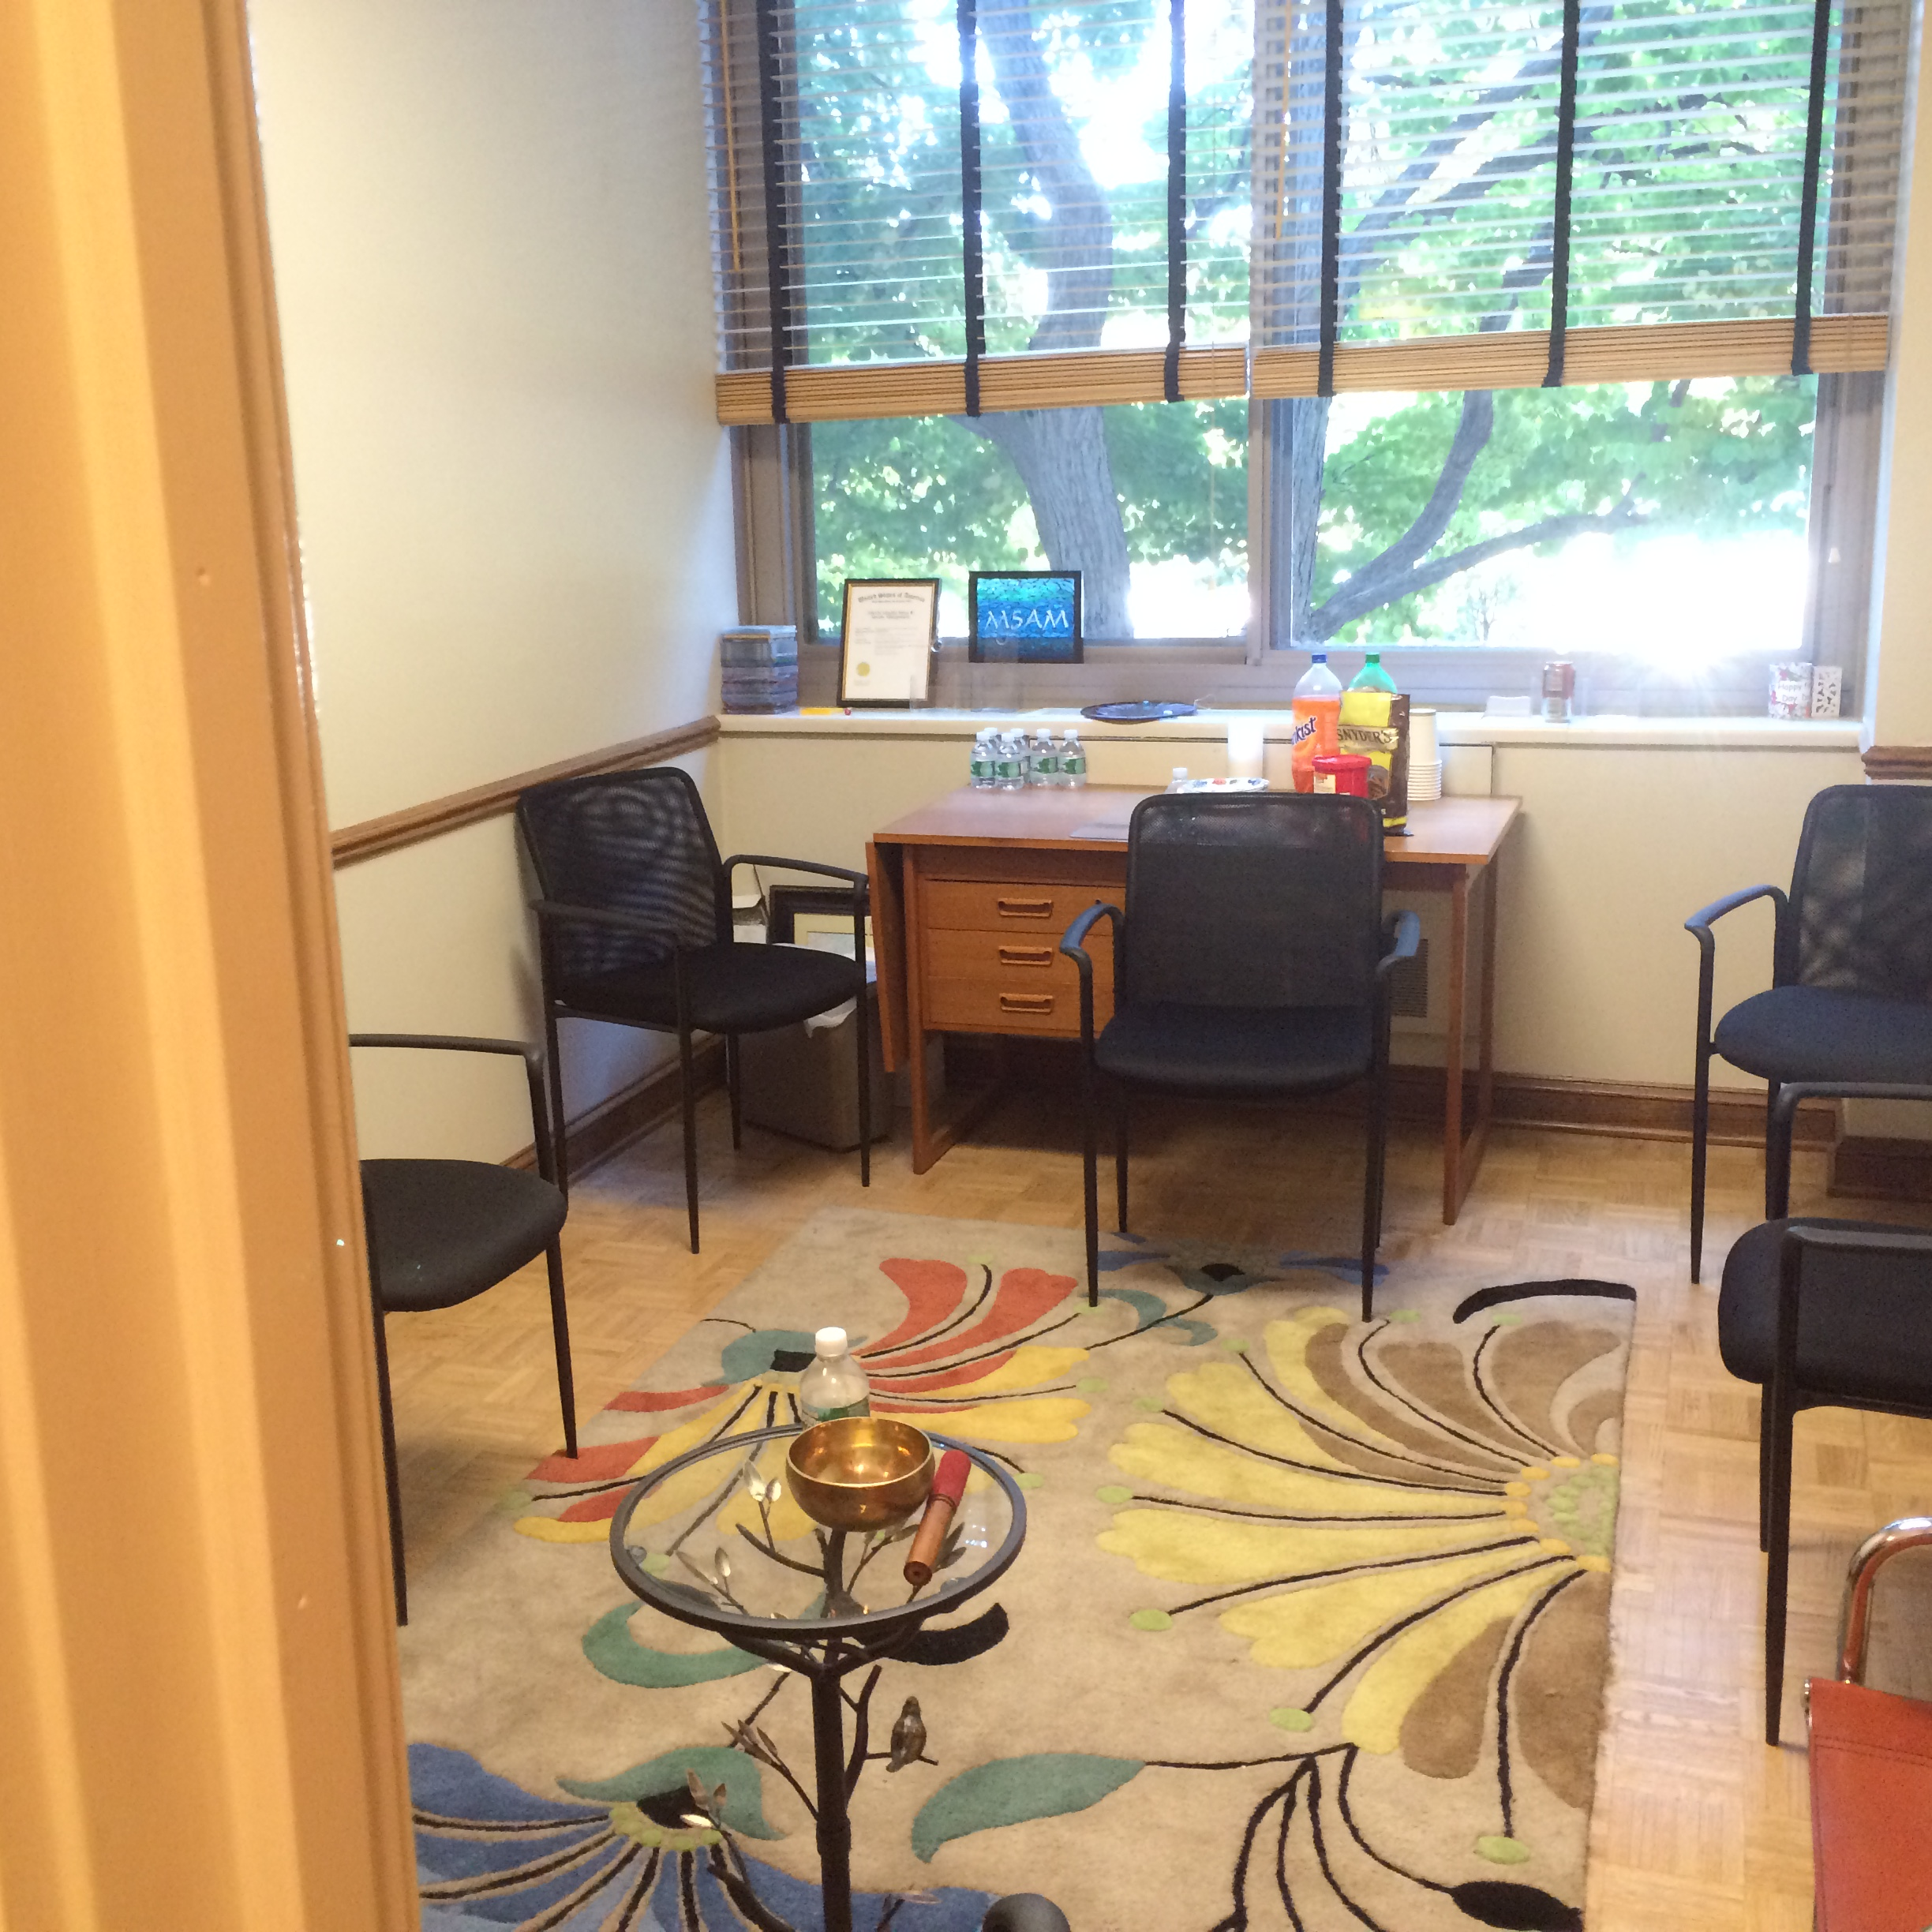 OCD CBT Mindful Stress & Anxiety Management Center of Philadelphia image 13